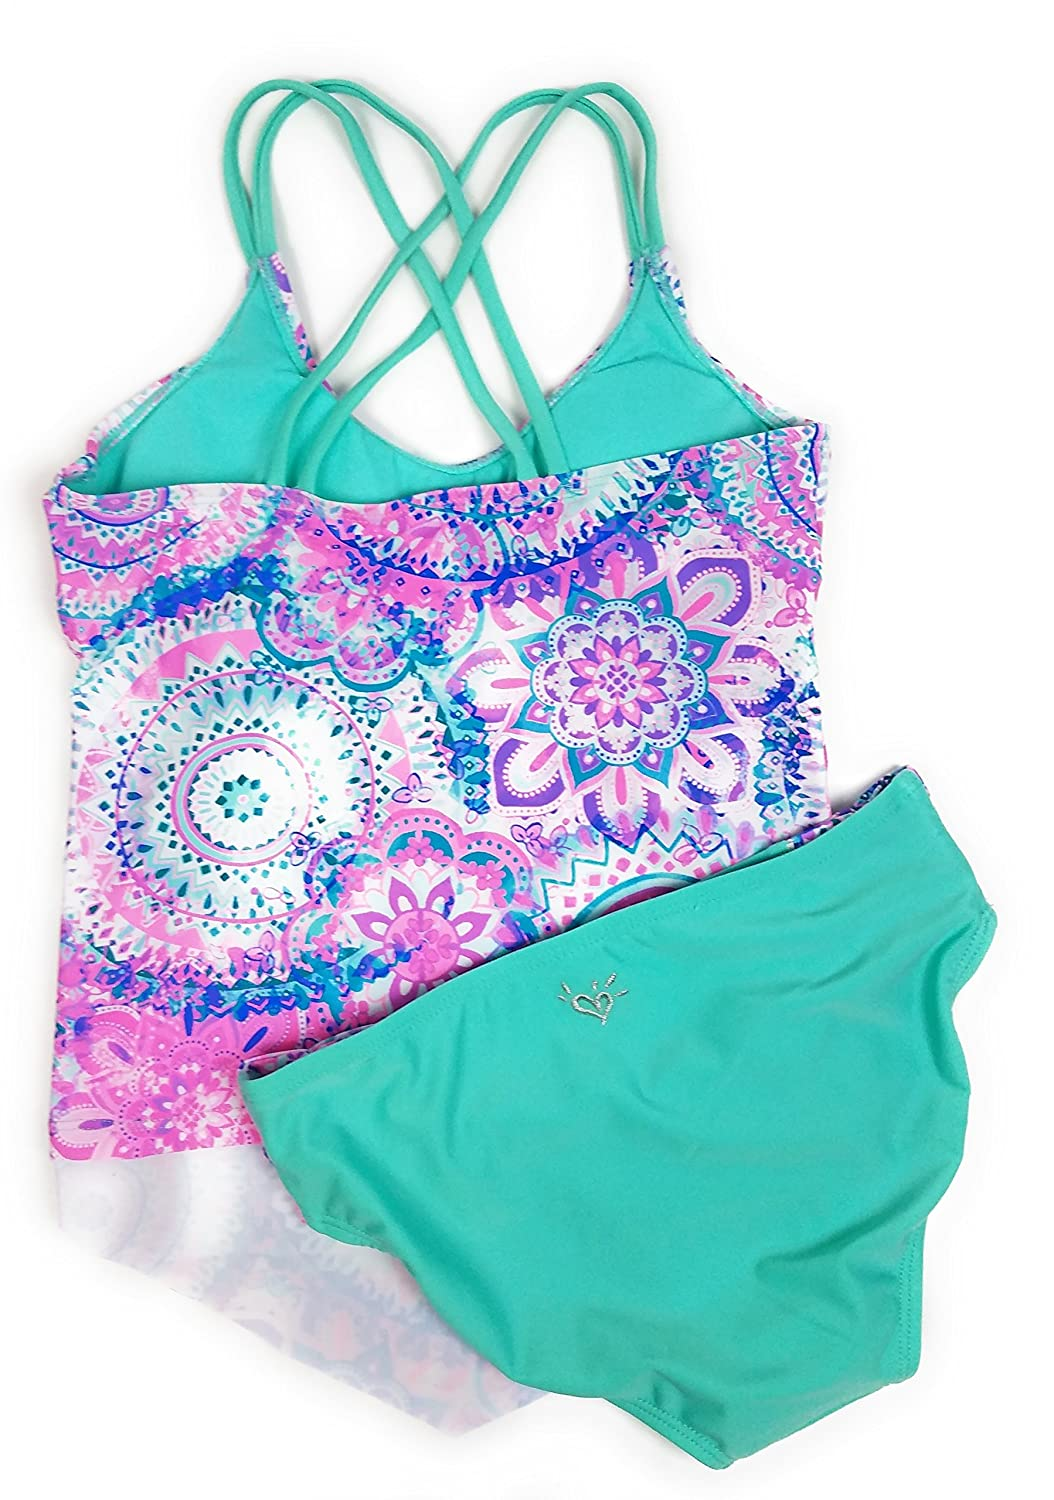 1183c22a4d Justice Big Girls' Swimsuits Tankini Bathing Suits Mult Sizes Colors larger  image